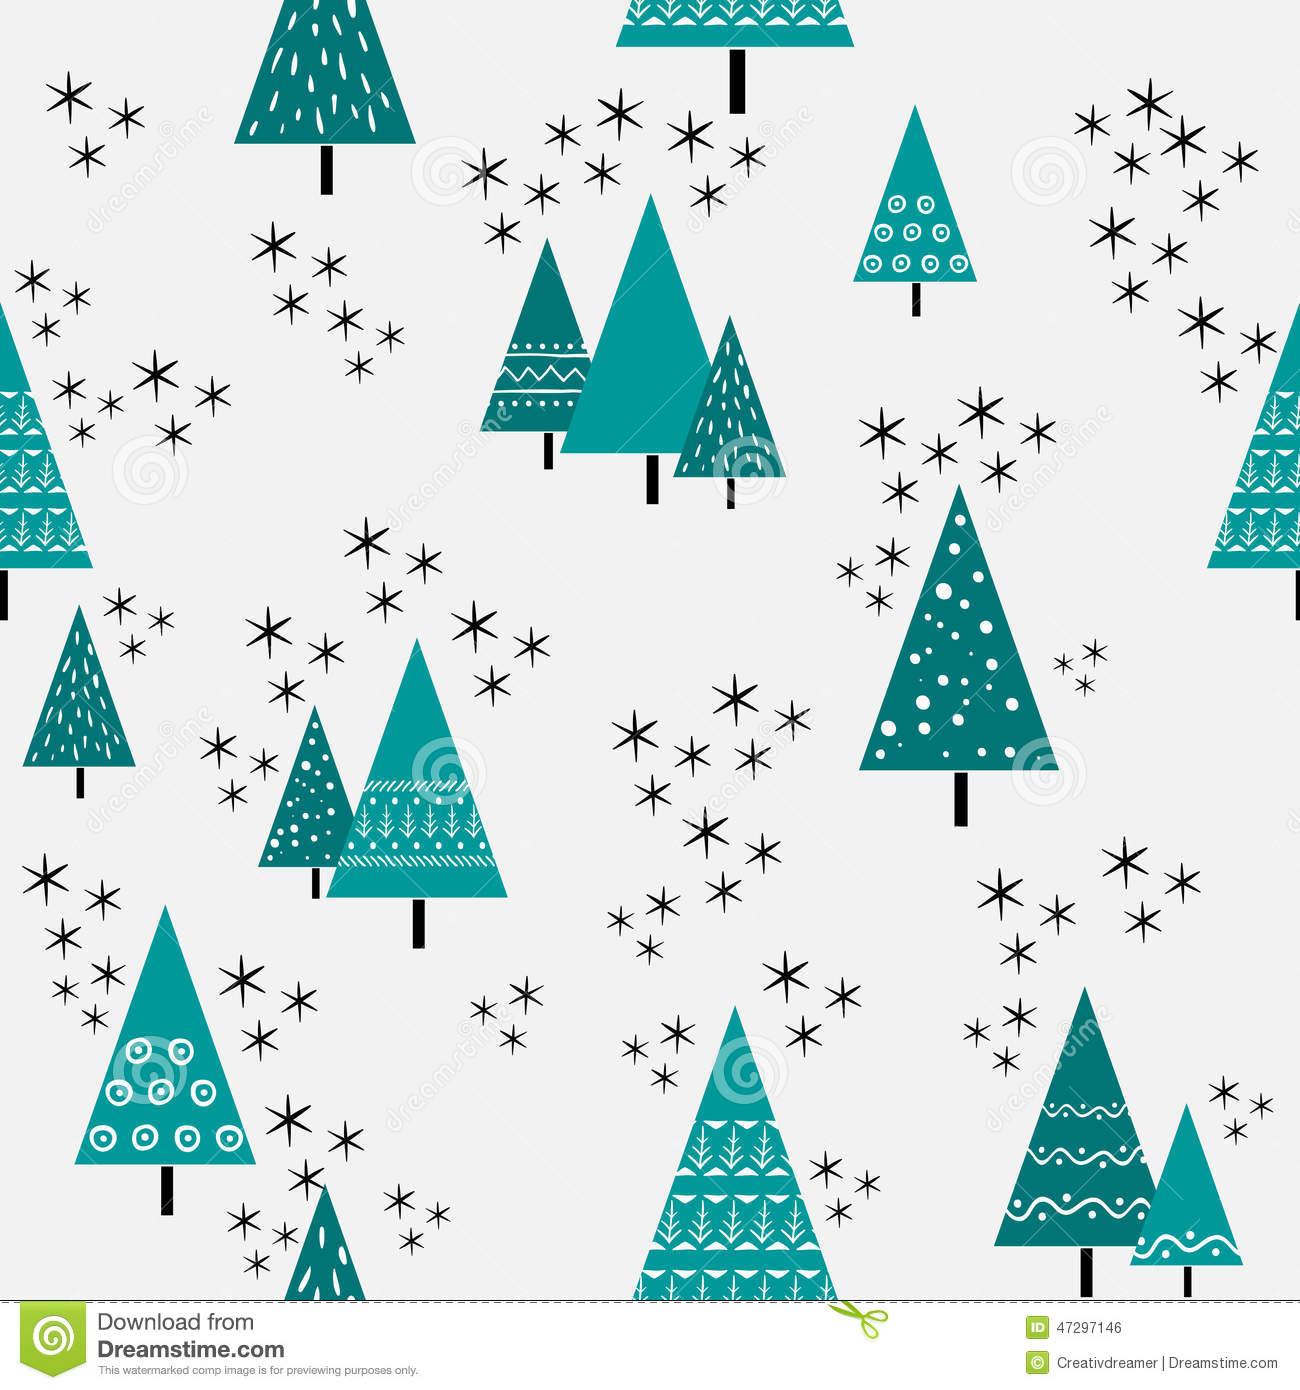 Christmas Tree Pattern.Seamless Christmas Tree Pattern In Flat Style Vector Stock